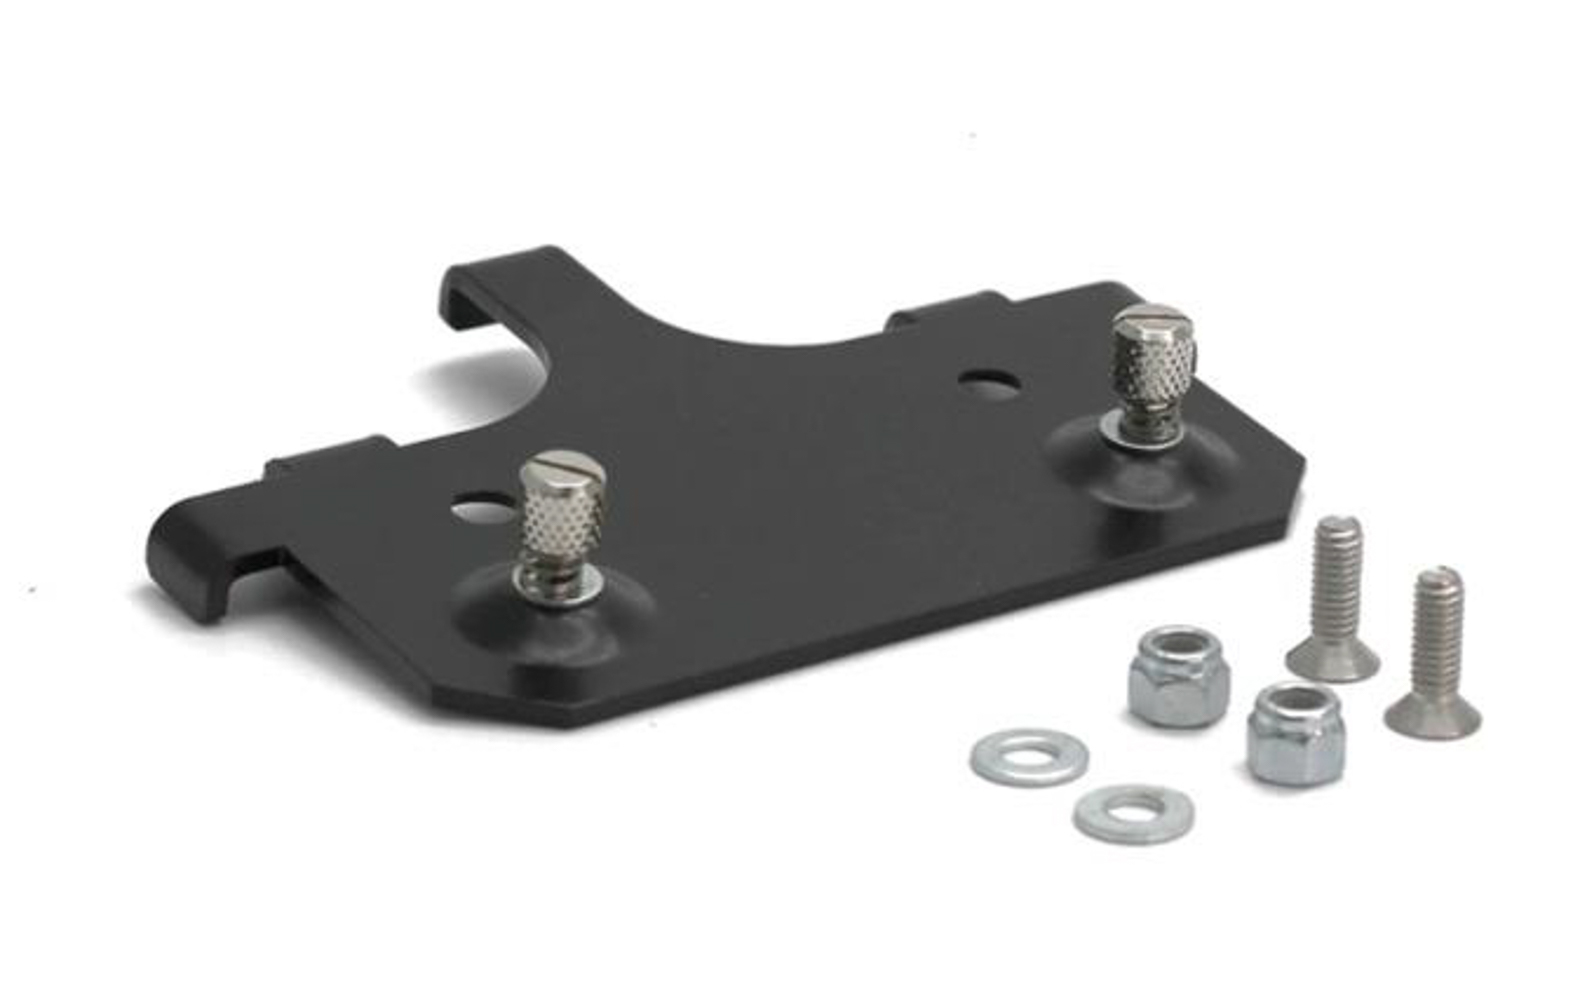 AIM Sports X47KPFSOLO2R0 Mounting Bracket SOLO2 Comes with Screws